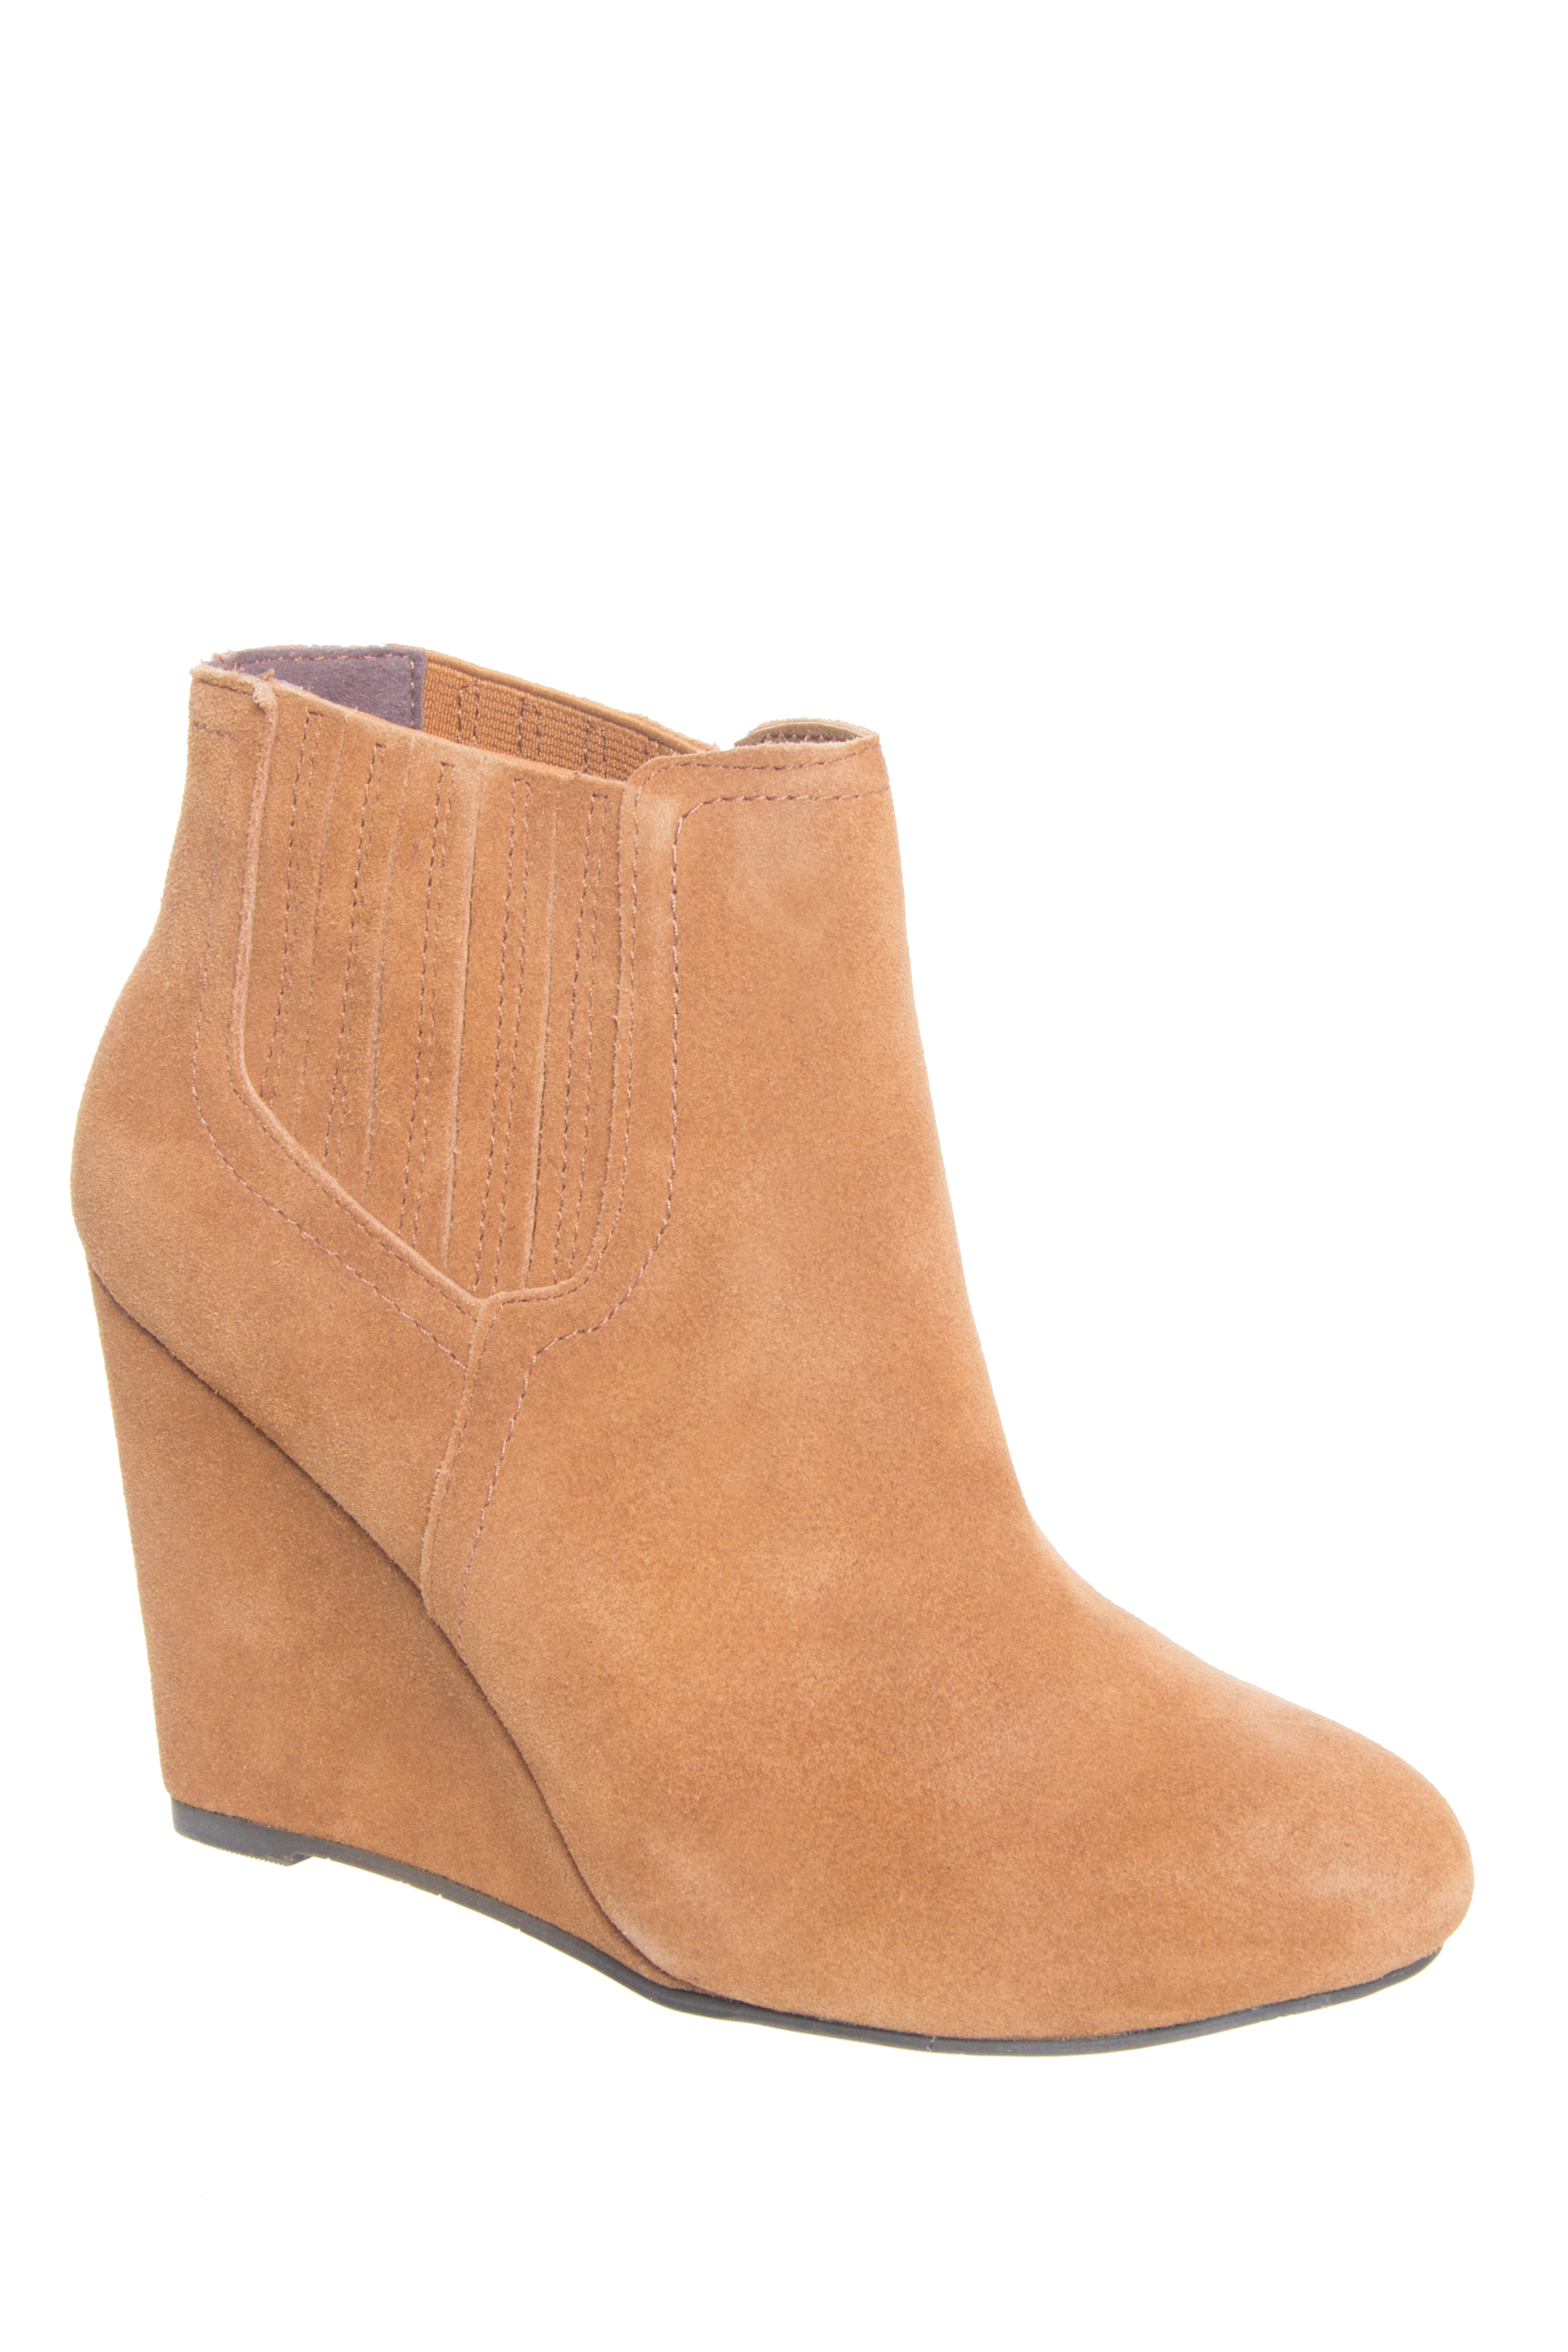 Restricted West Gate Mid Wedge Chelsea Booties - Whiskey Suede